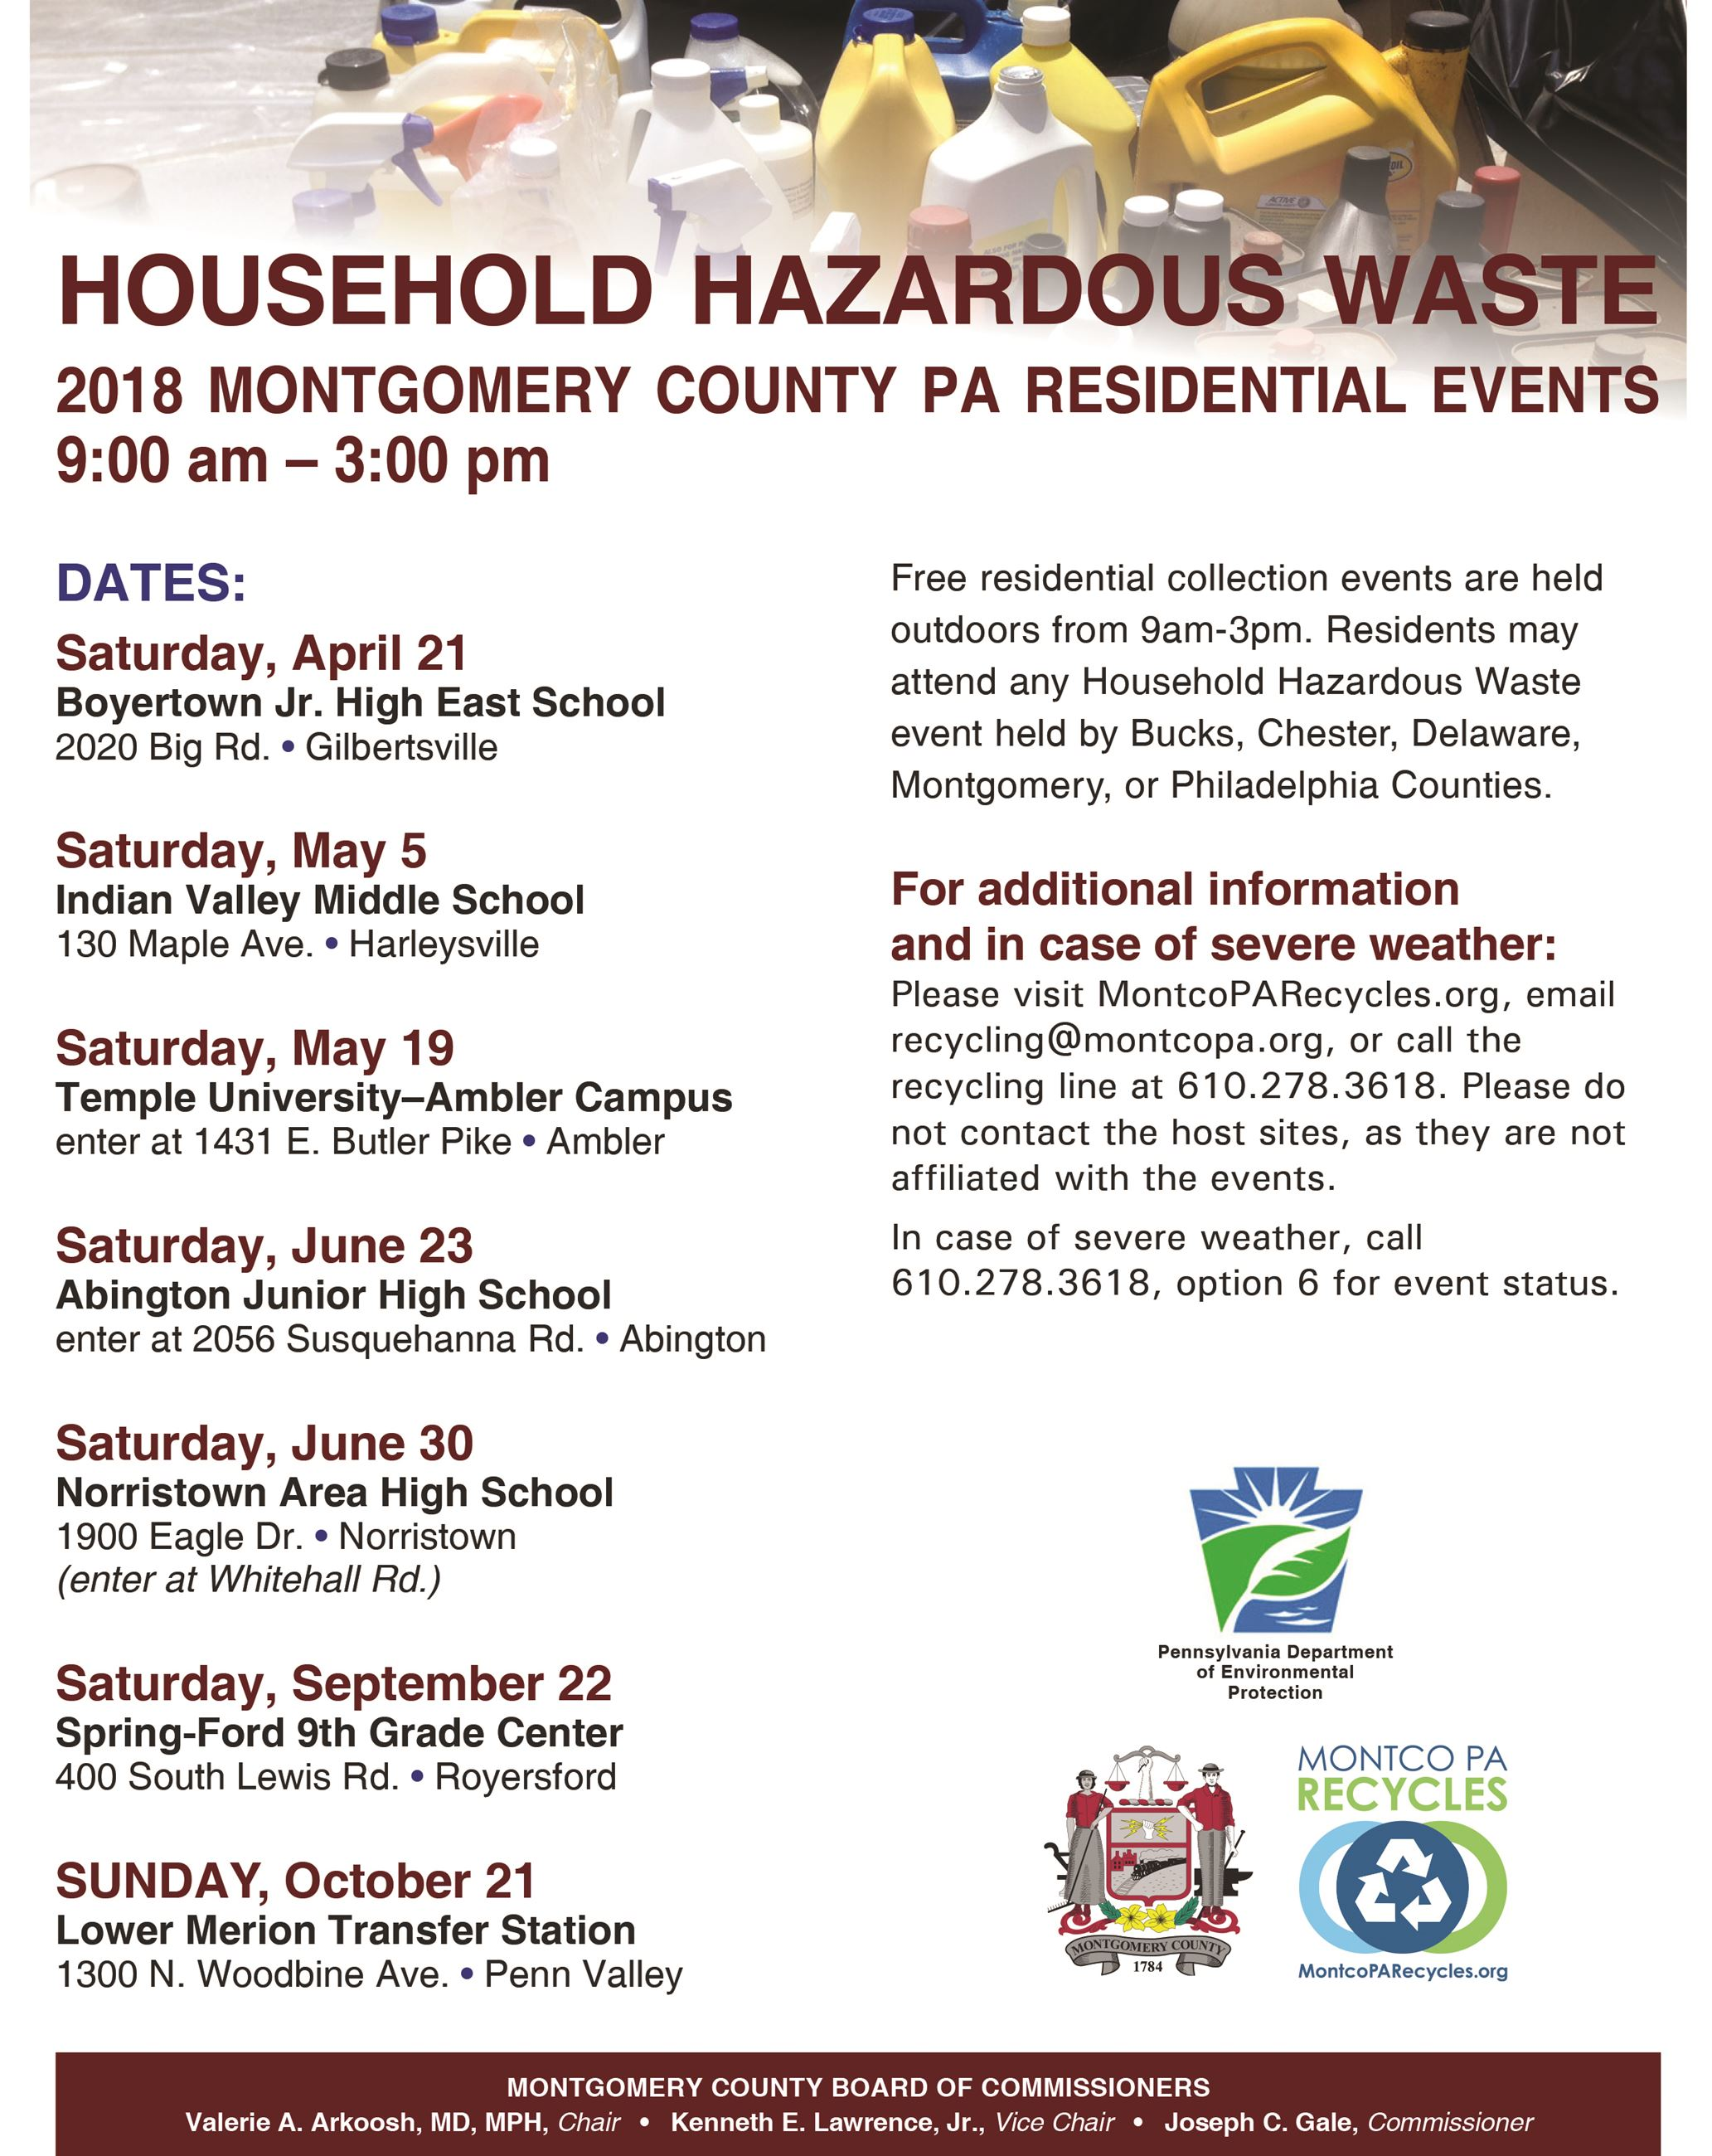 2018 Household Hazardous Waste Flyer